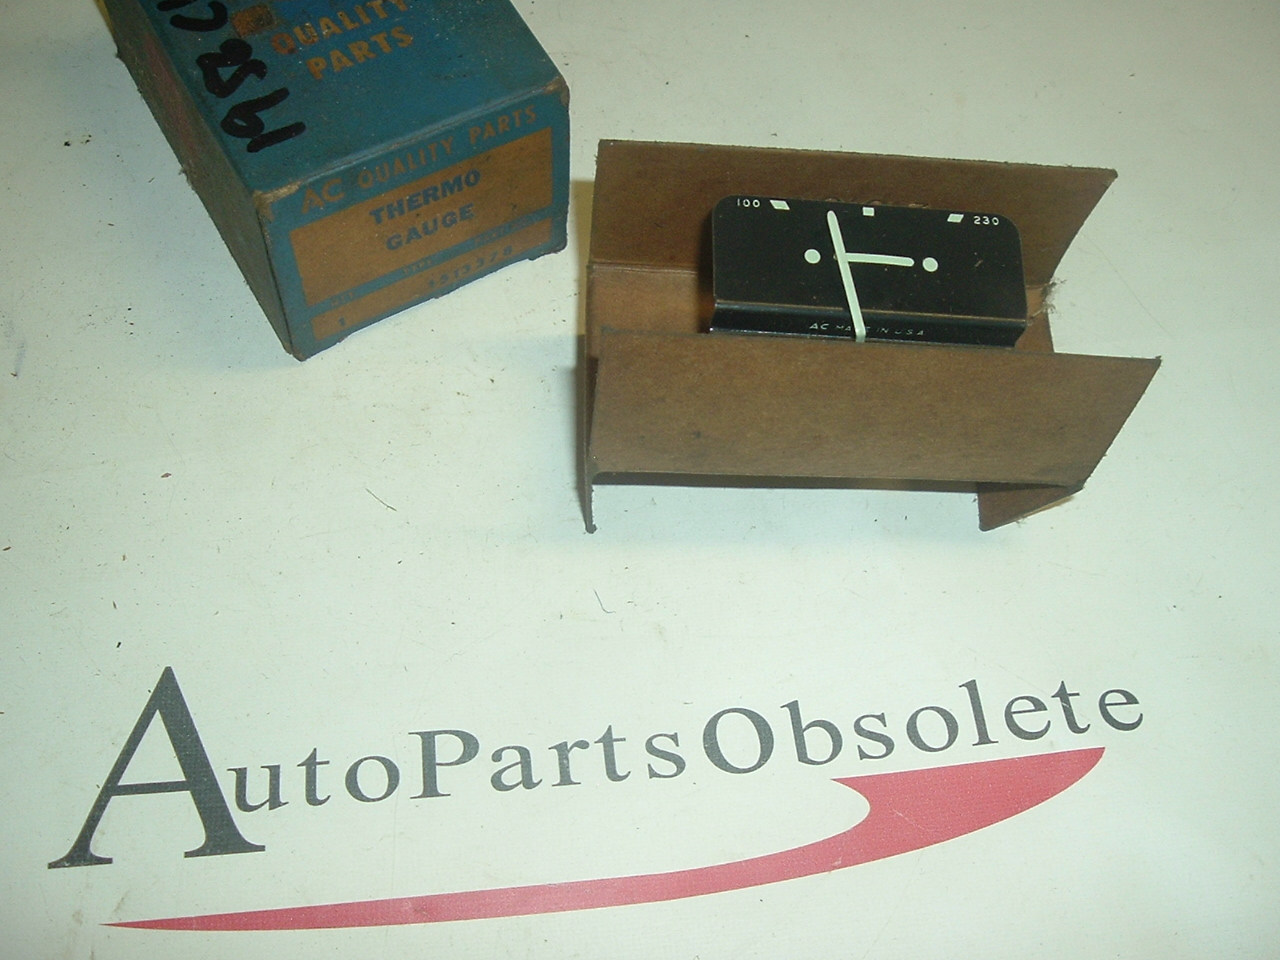 1956 Chevrolet temperature gauge nos 1513378 (a 1513378)